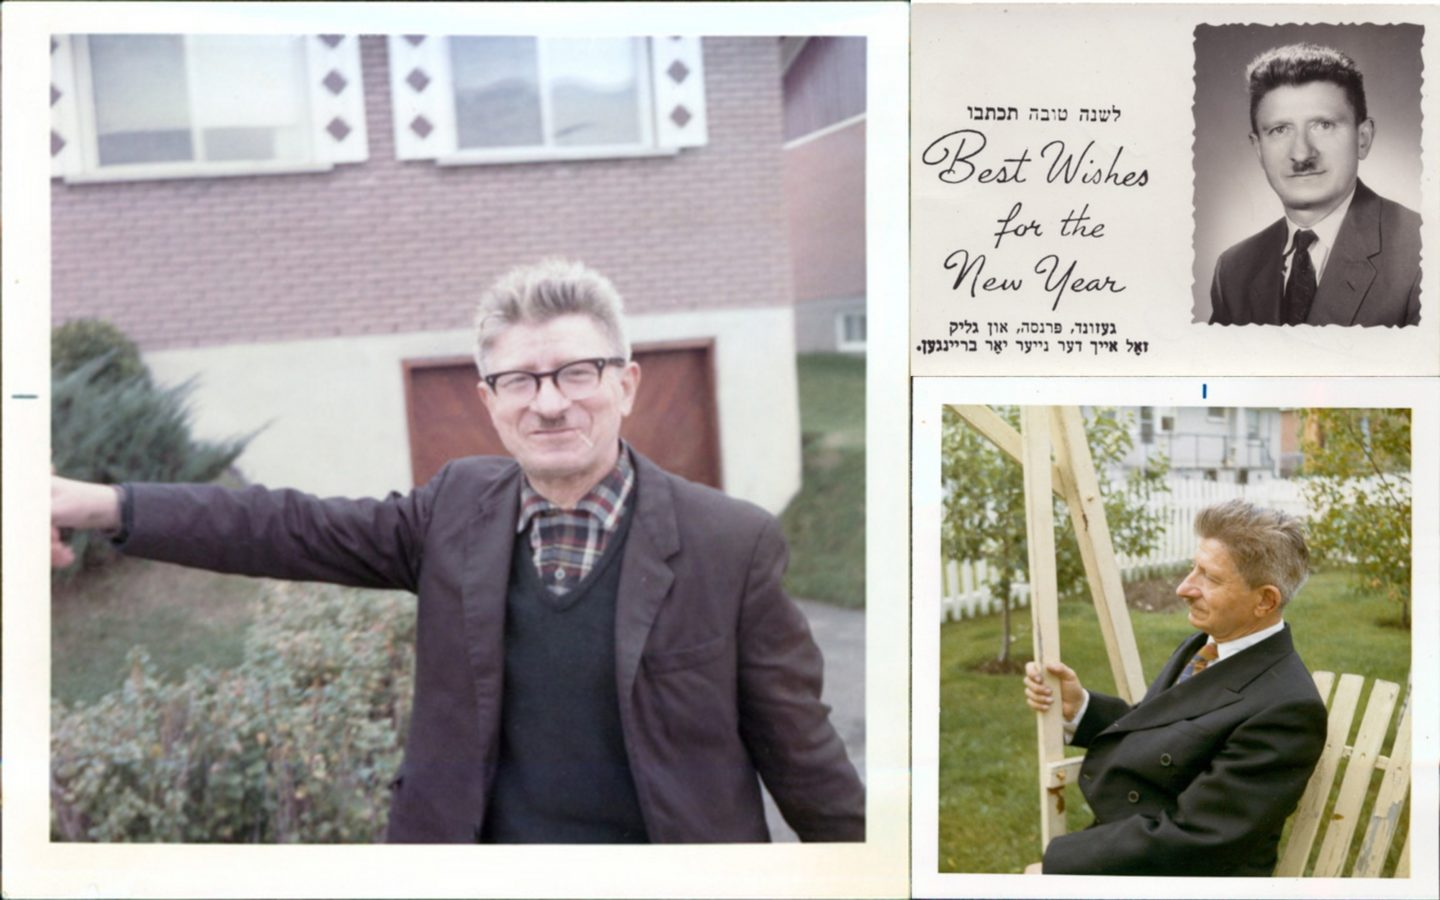 <p>Photos of Motl Siemiatycki courtesy of his son, Jack&nbsp;Siemiatycki.</p>